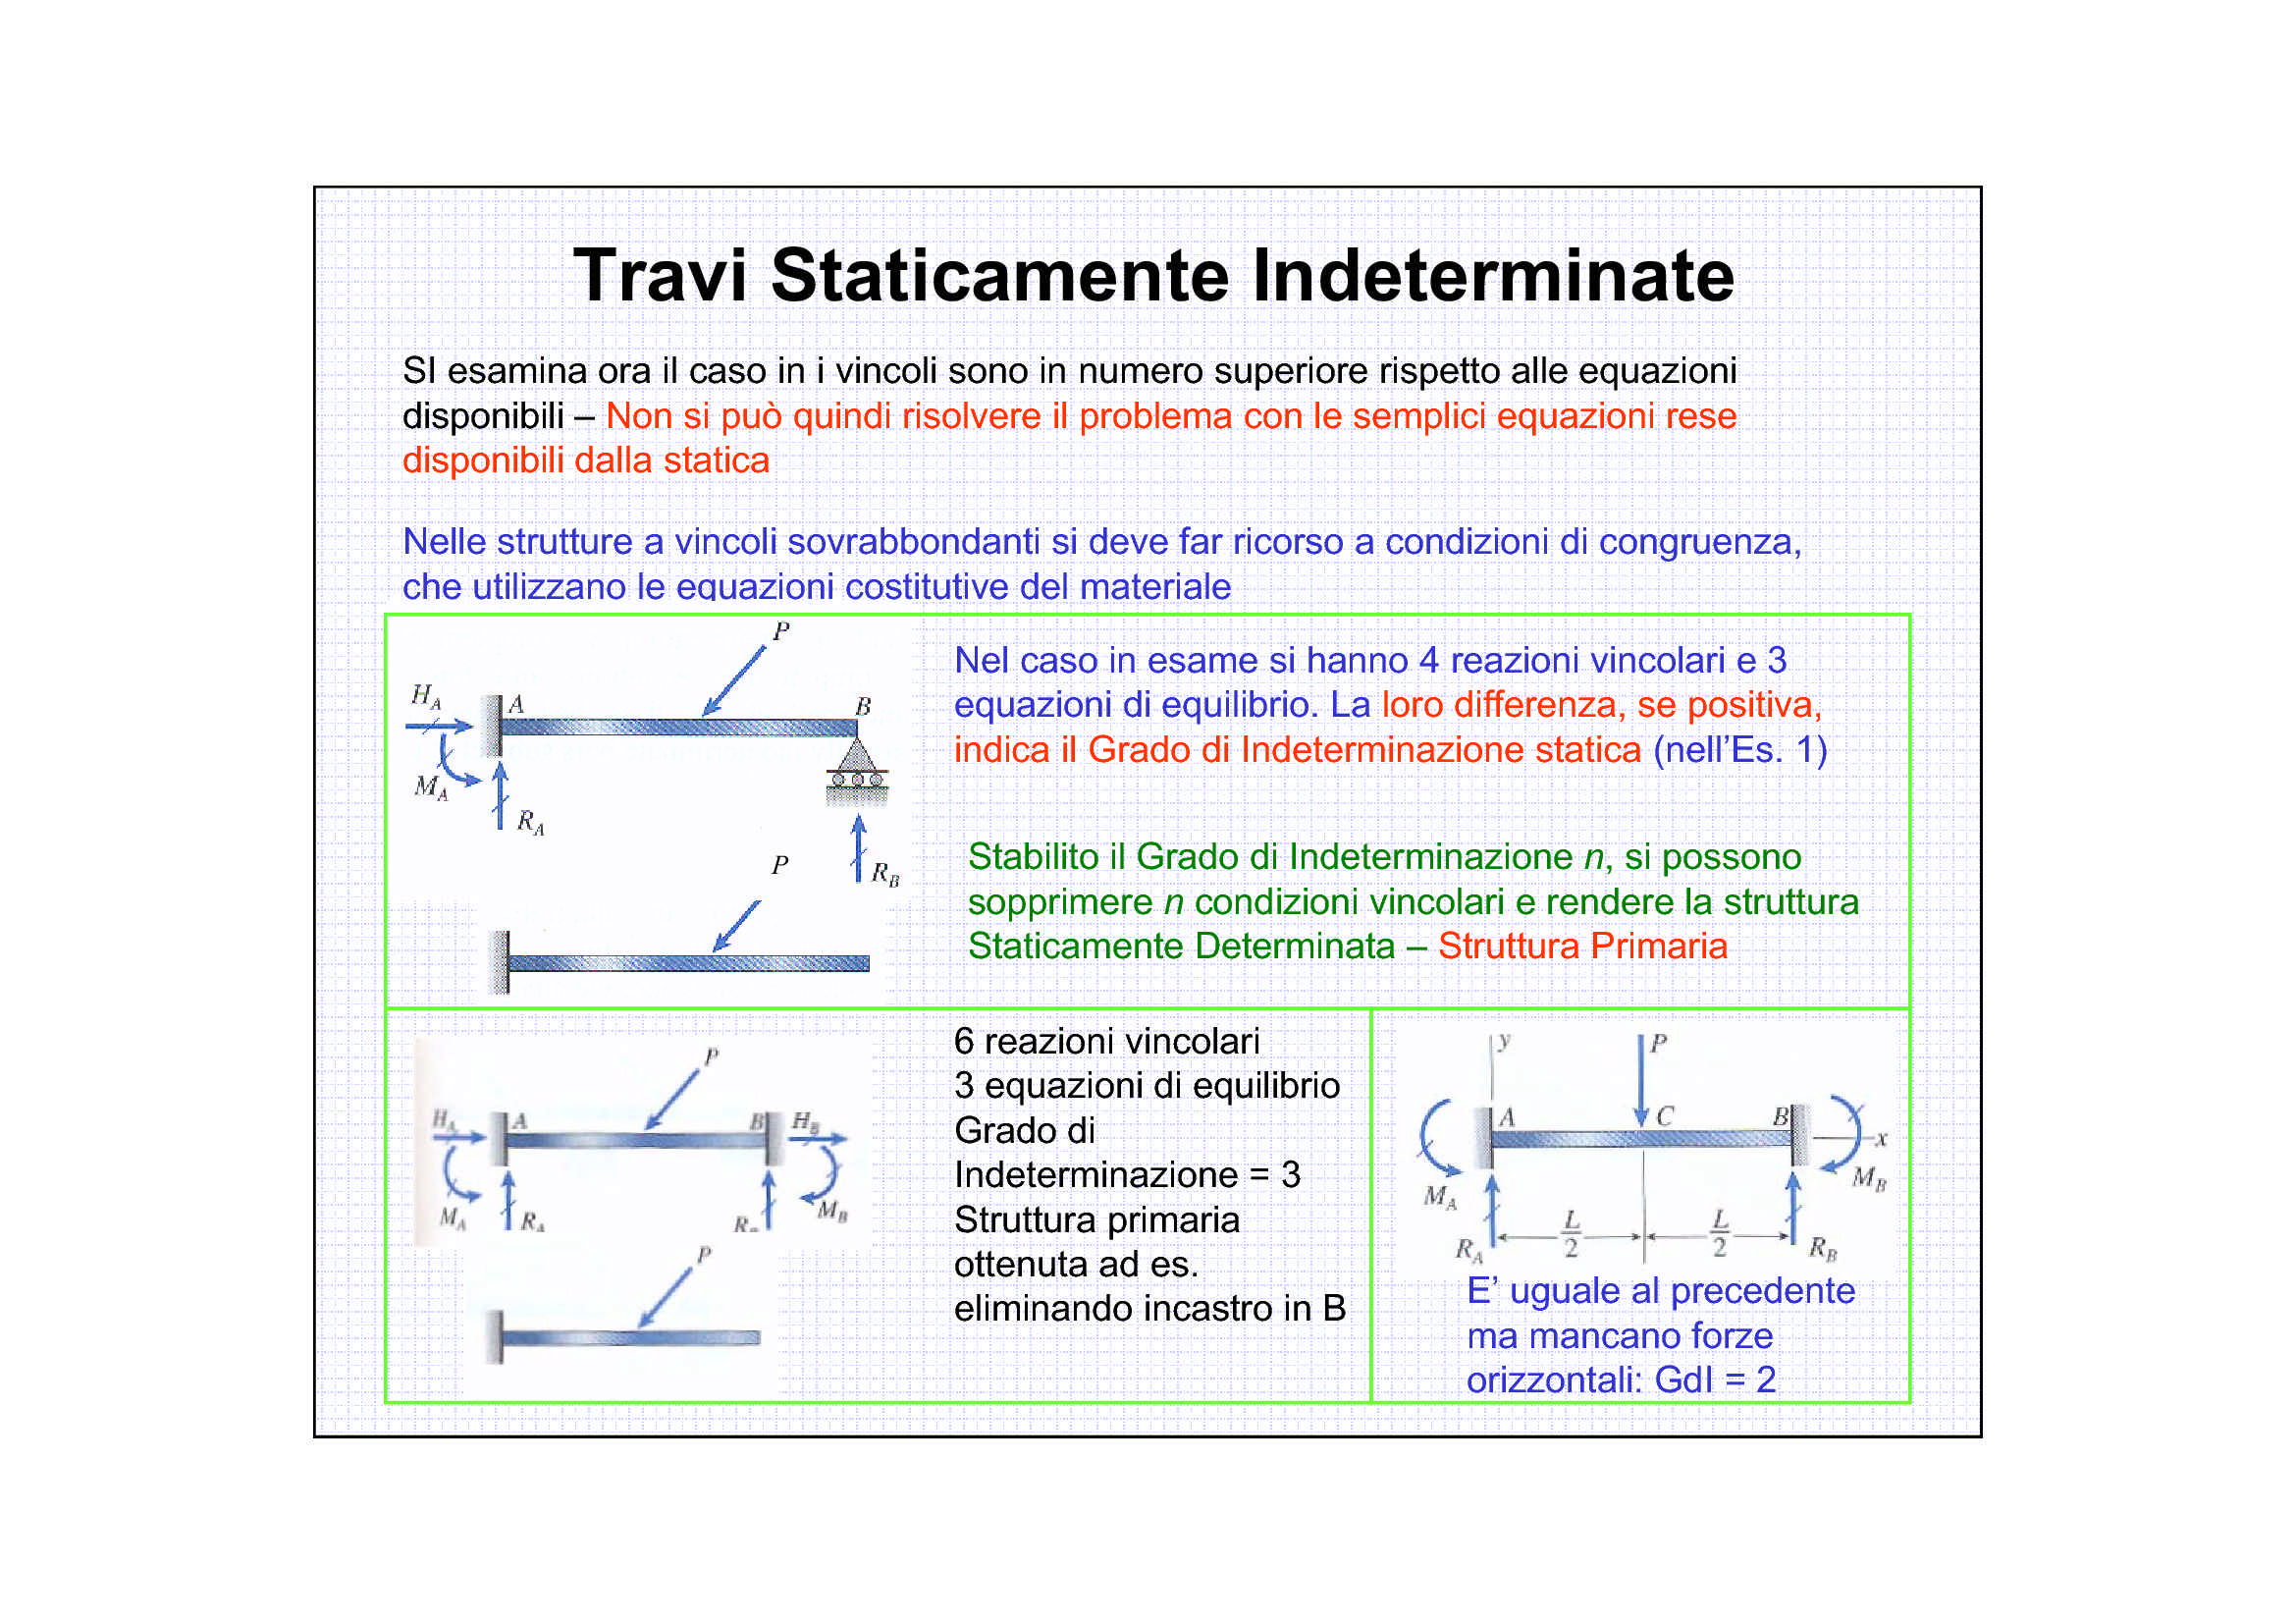 Travi statisticamente indeterminate